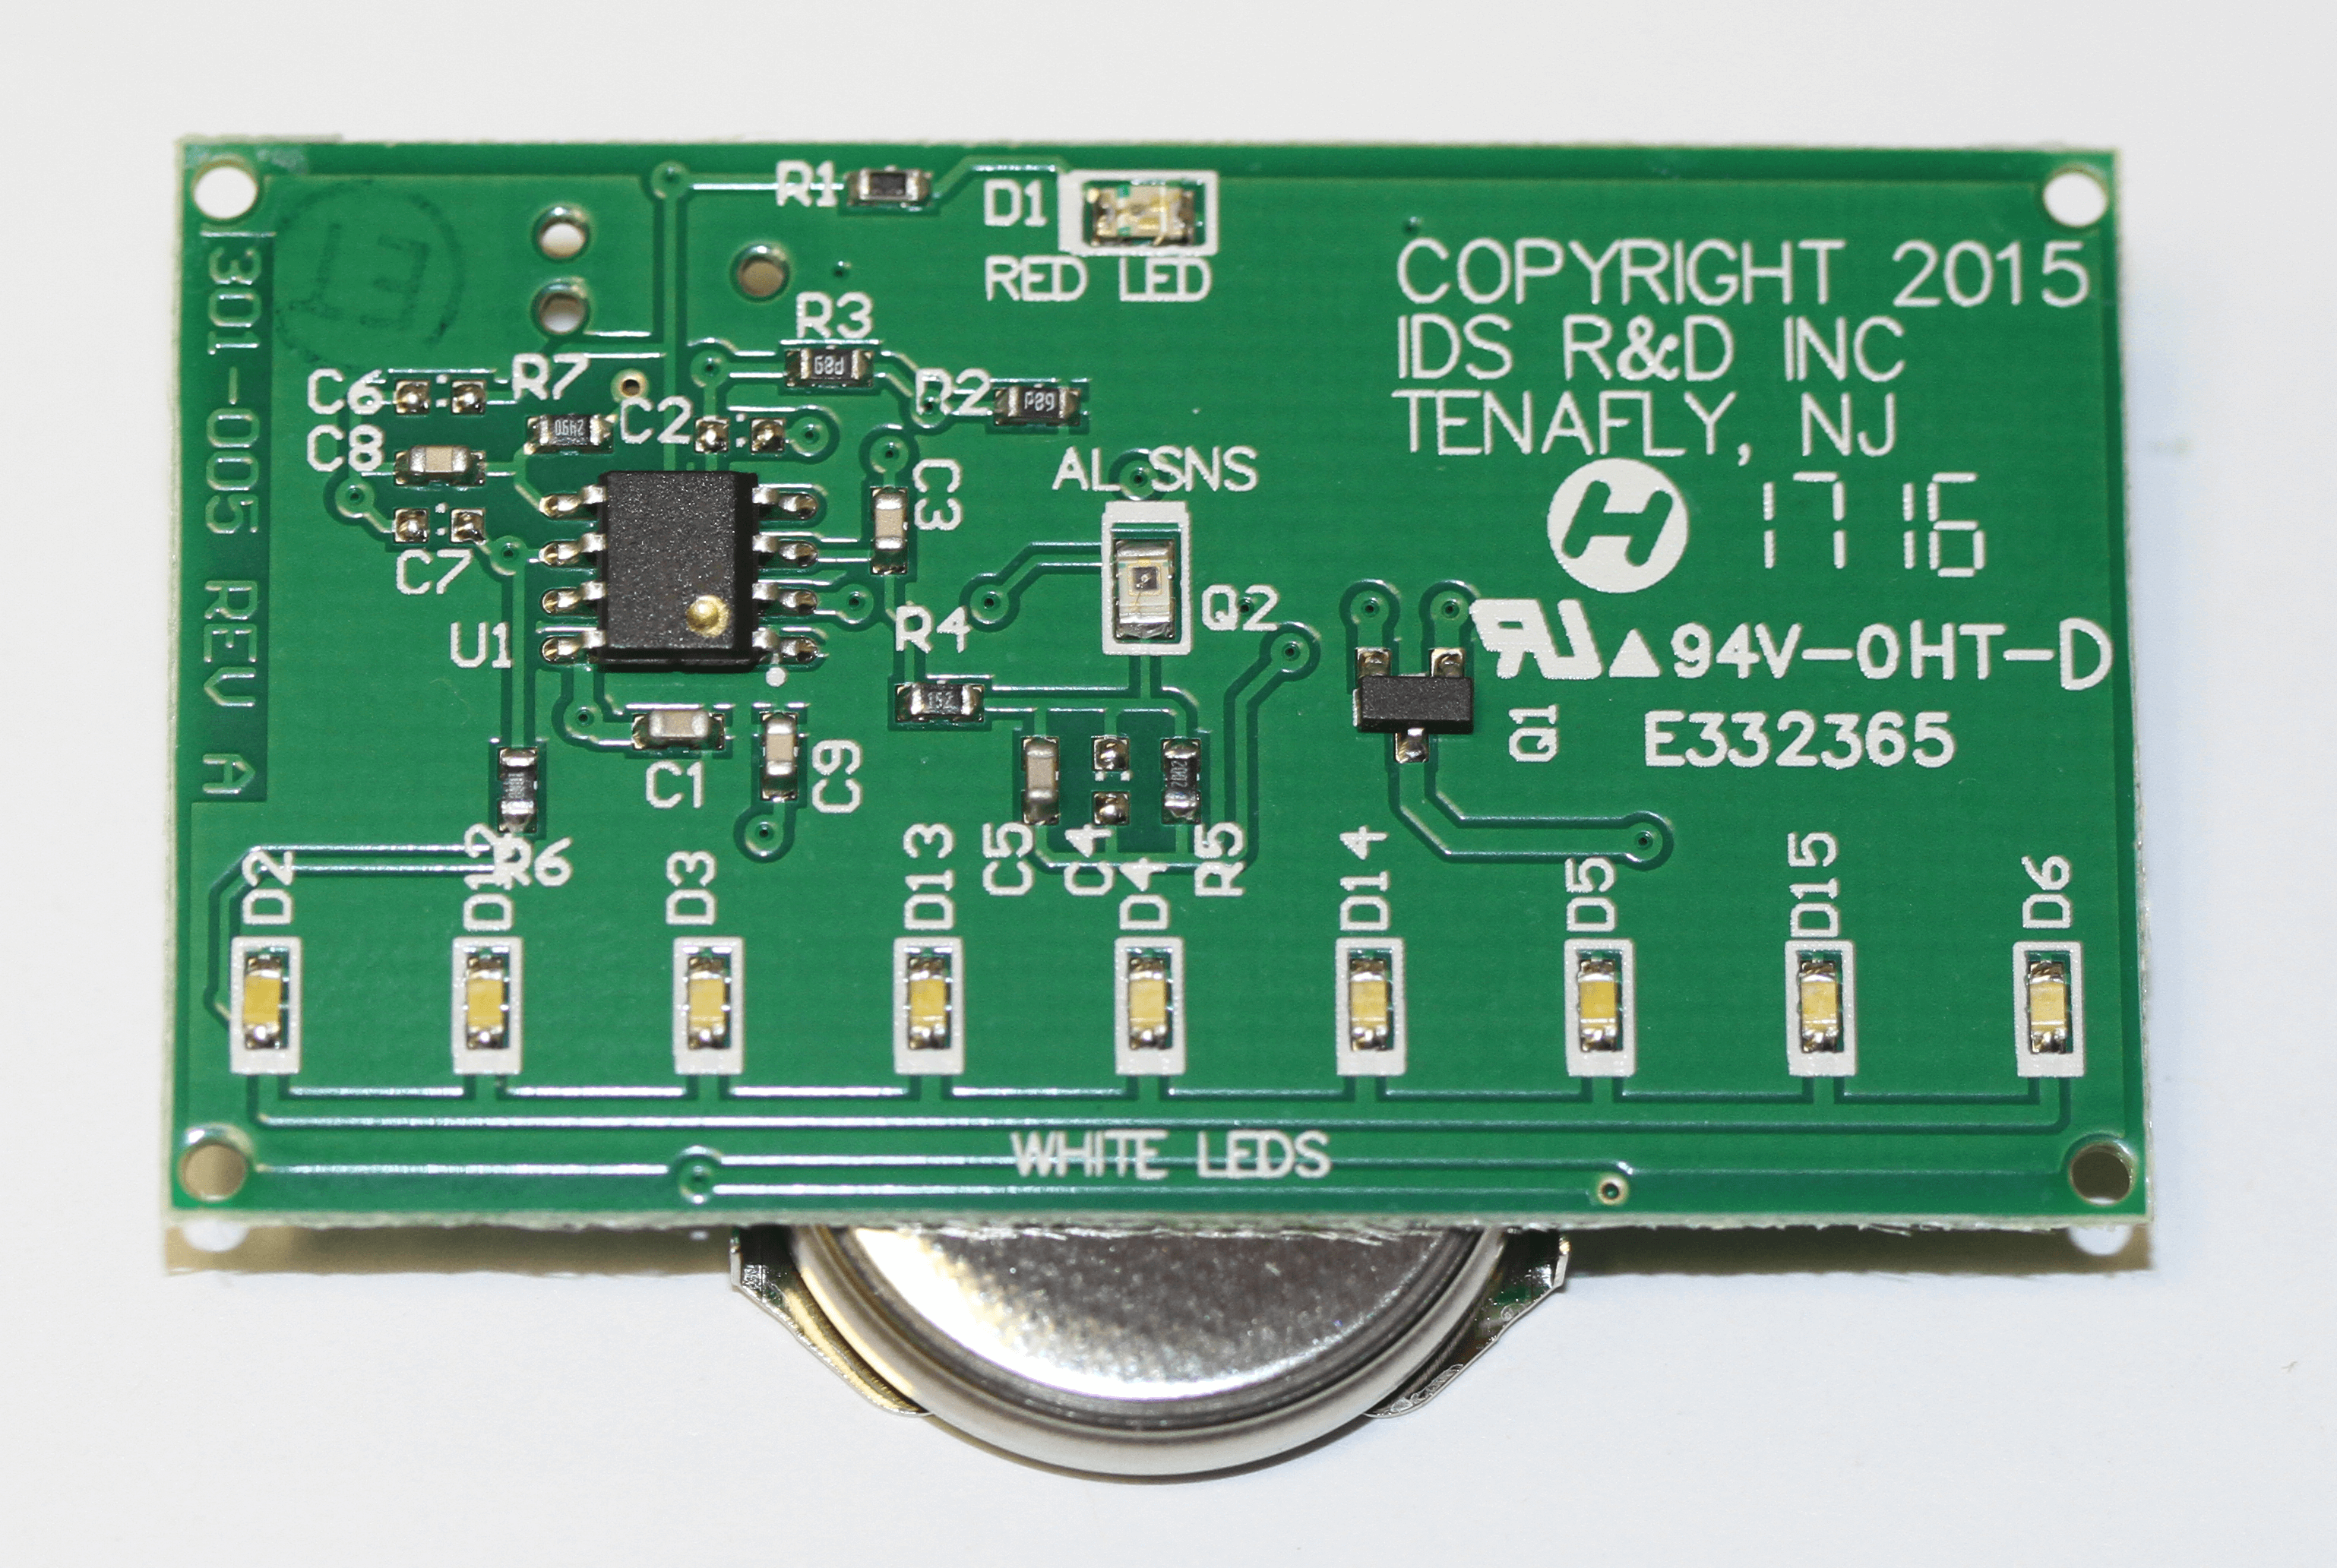 Microprocessor Based Circuit Board of the SmartDeterrent